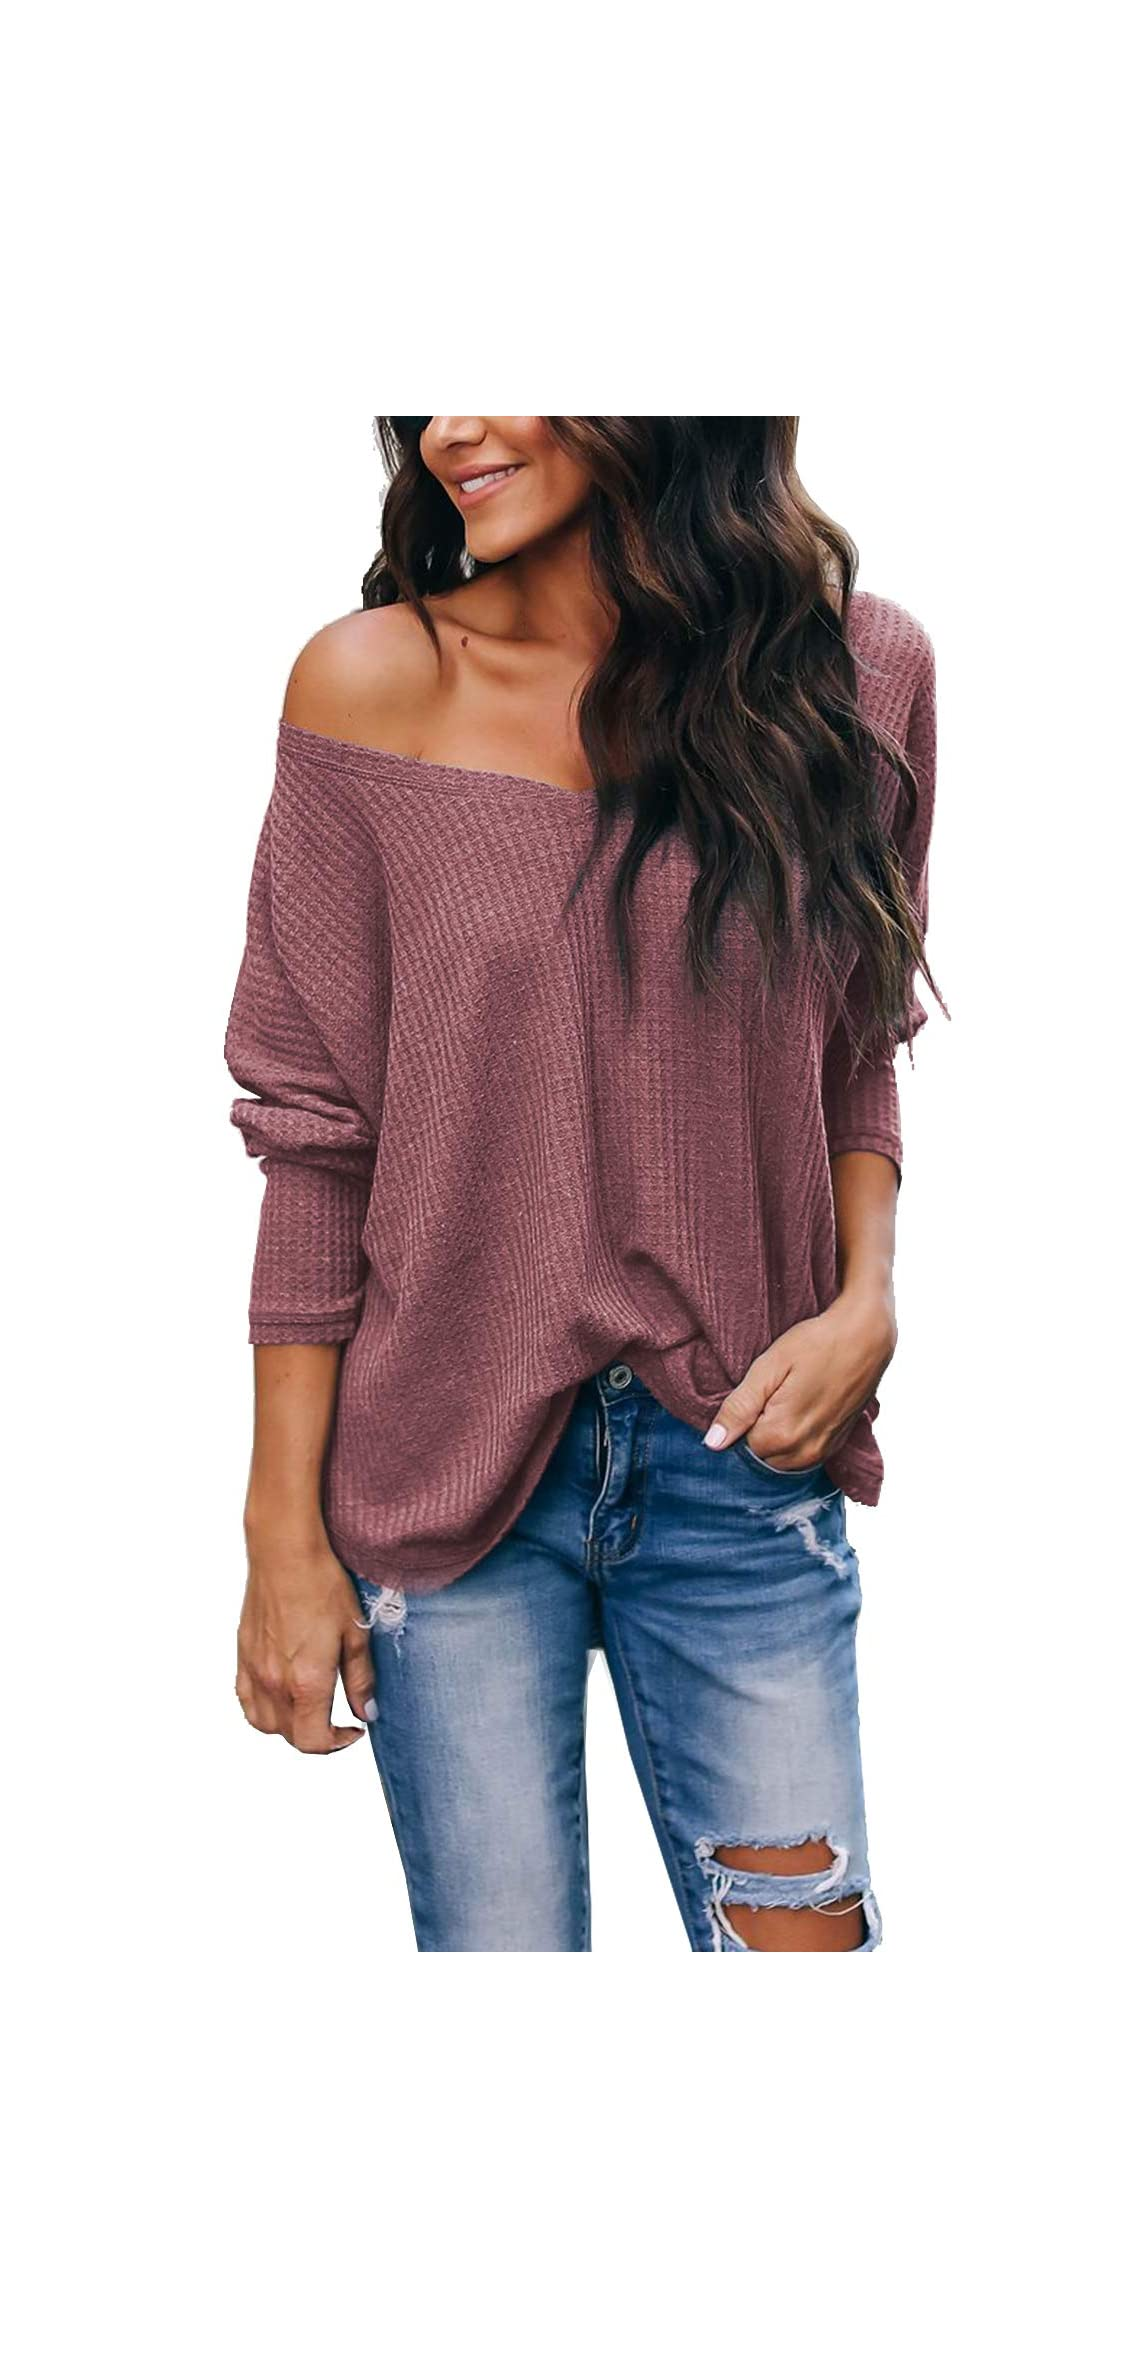 Women's Casual V-neck Off-shoulder Batwing Sleeve Tops